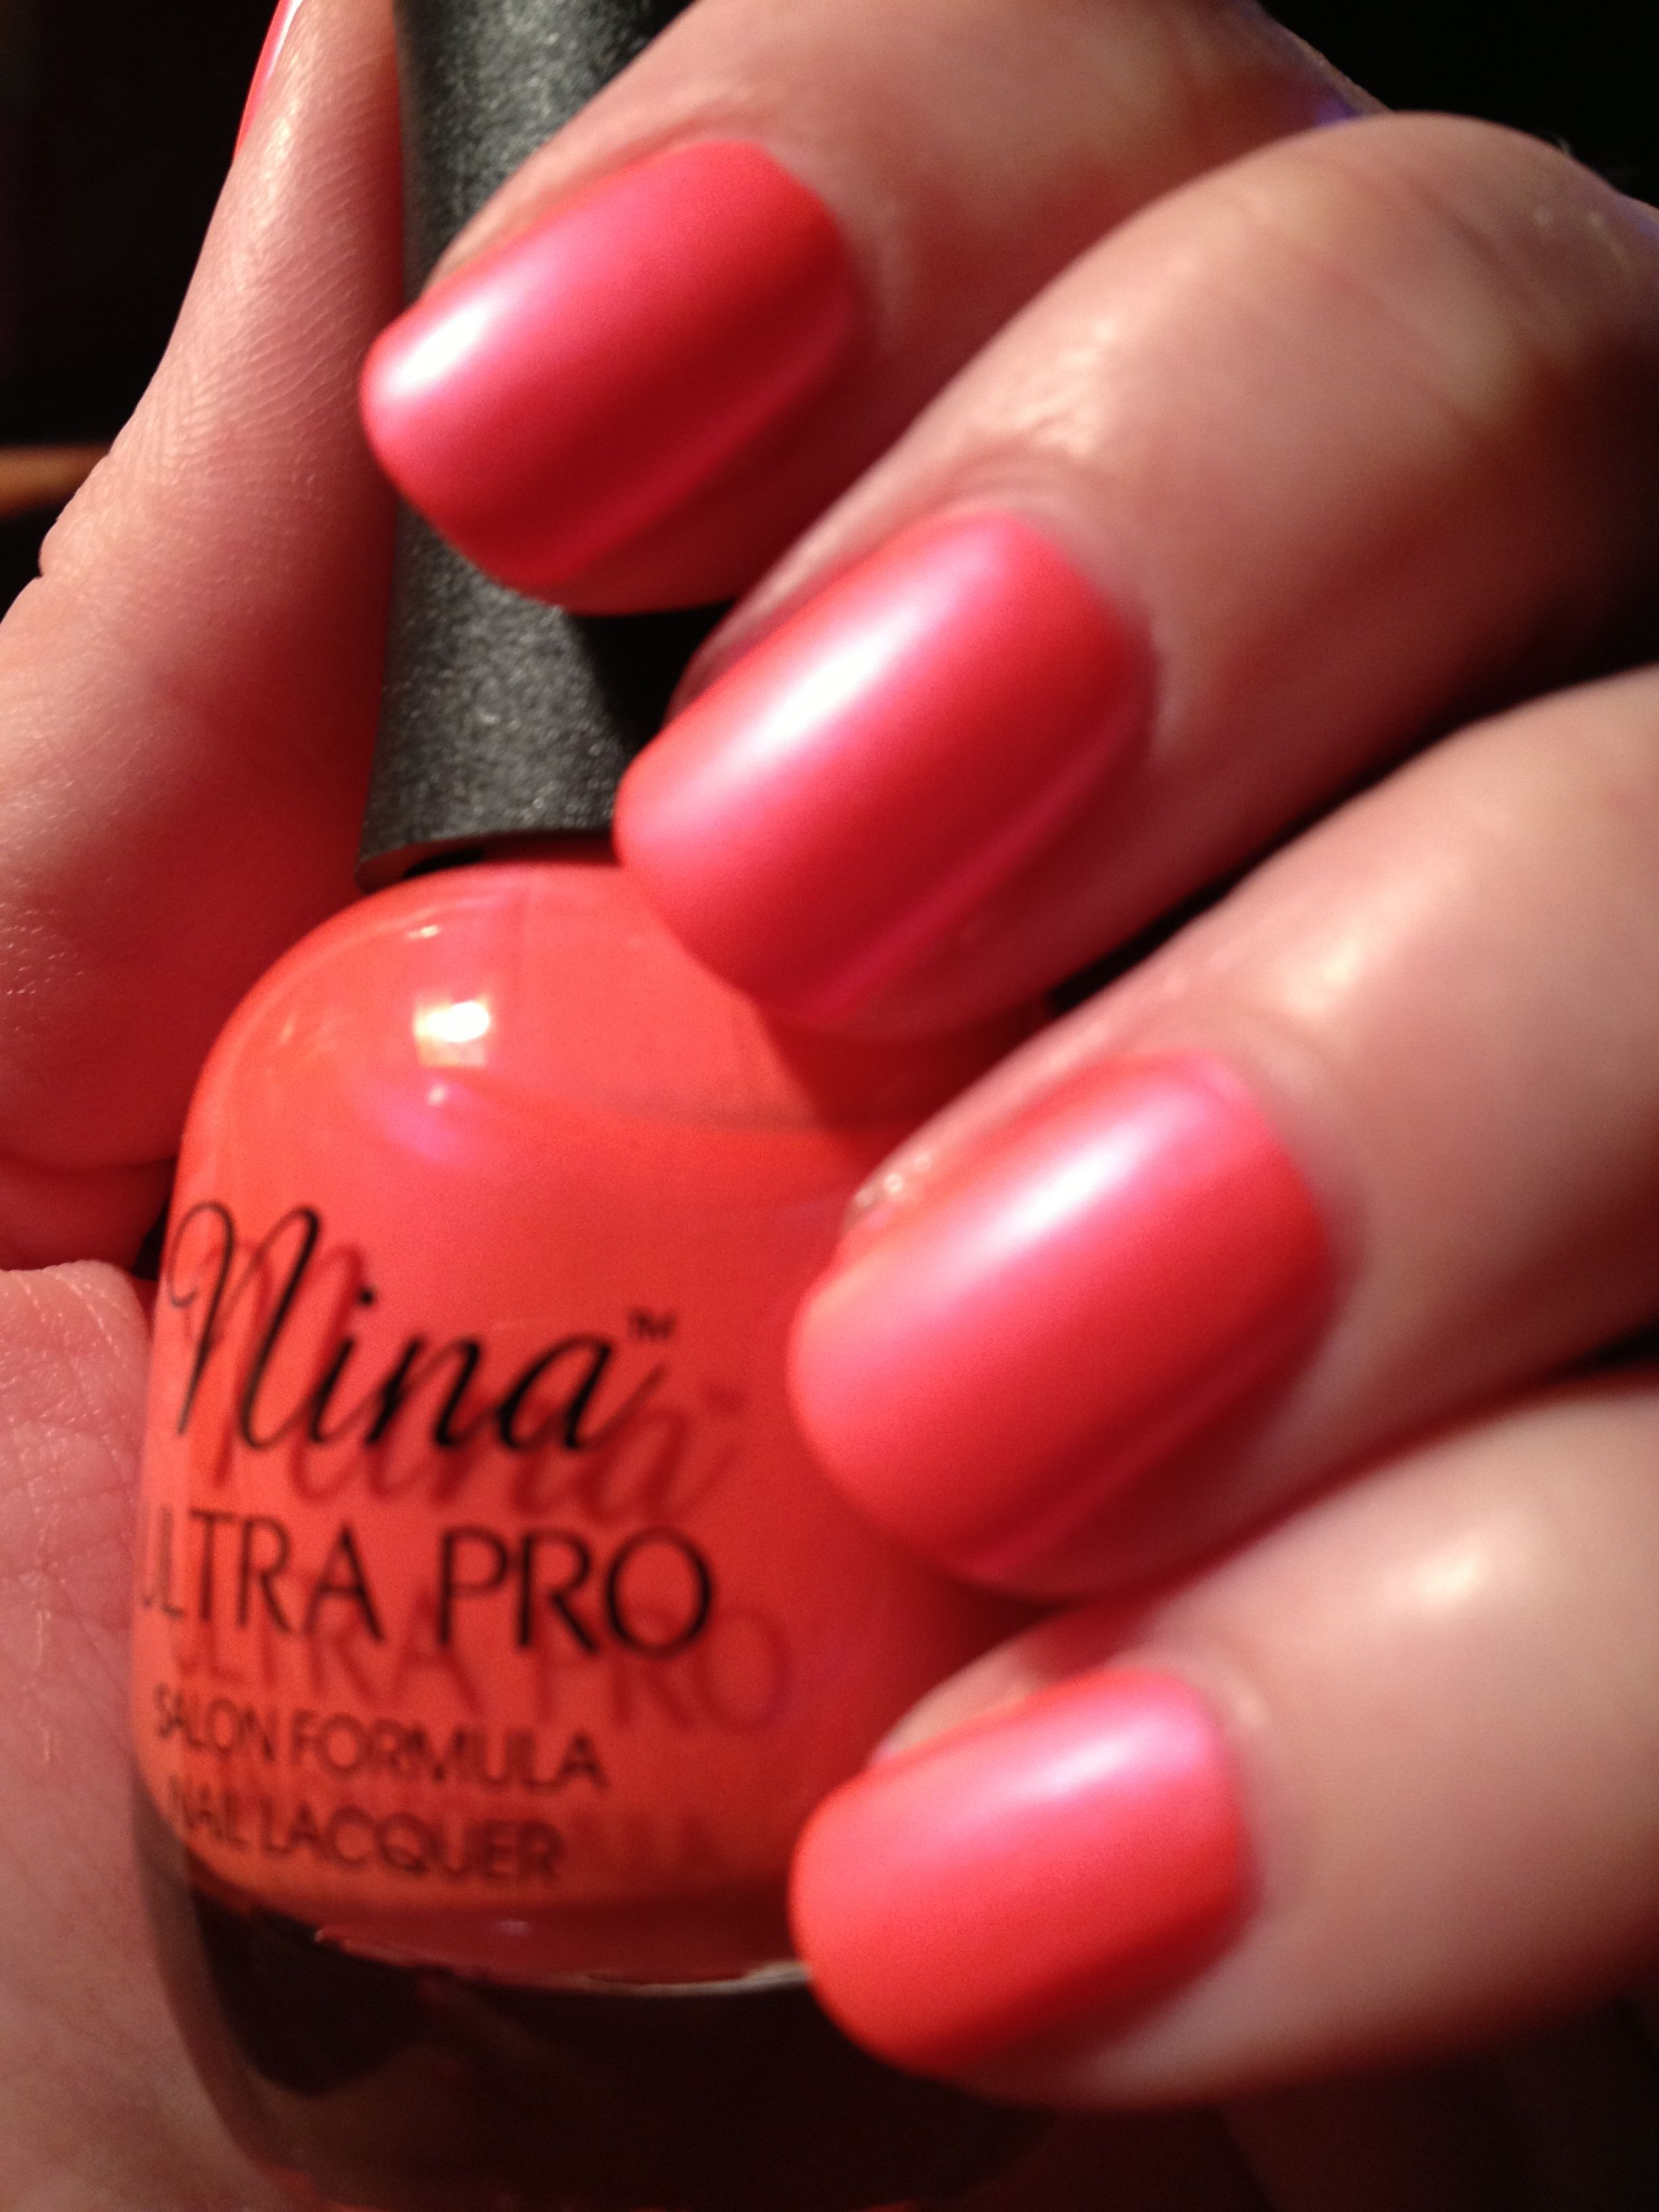 Ultra Pro - Pearly Brights. A beautiful, bright, matte coral nail polish for spring and summer!